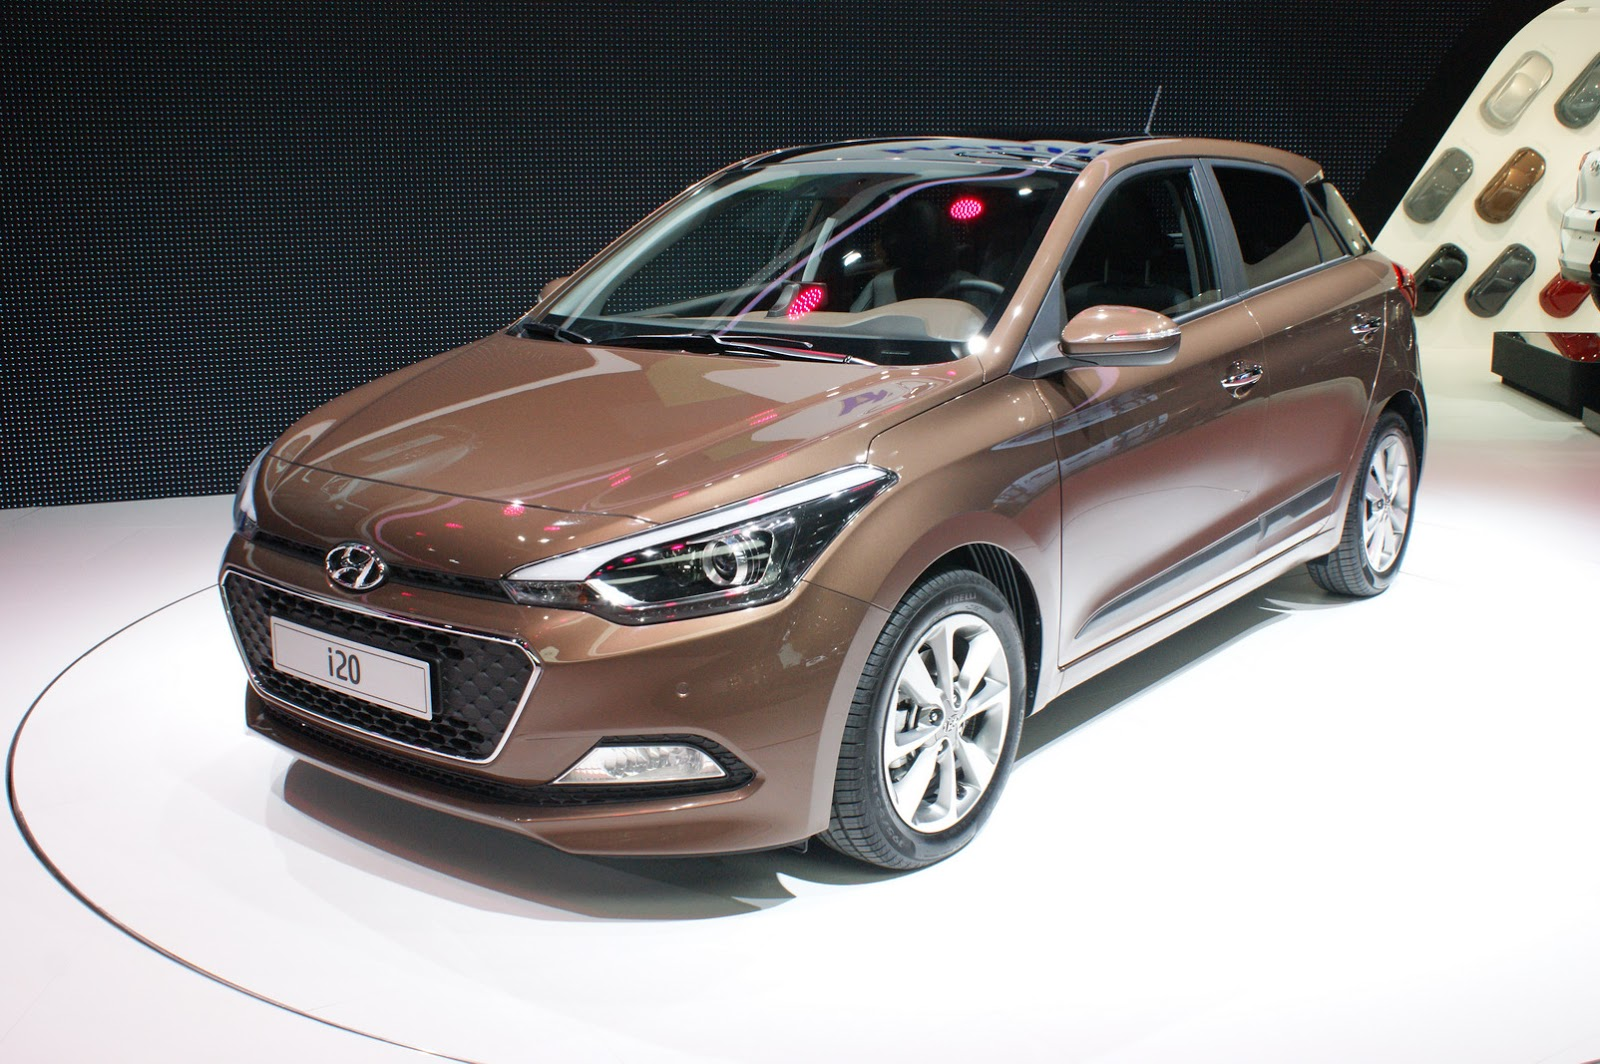 new hyundai i20 promises euro tuned chassis comfort oriented ride carscoops. Black Bedroom Furniture Sets. Home Design Ideas